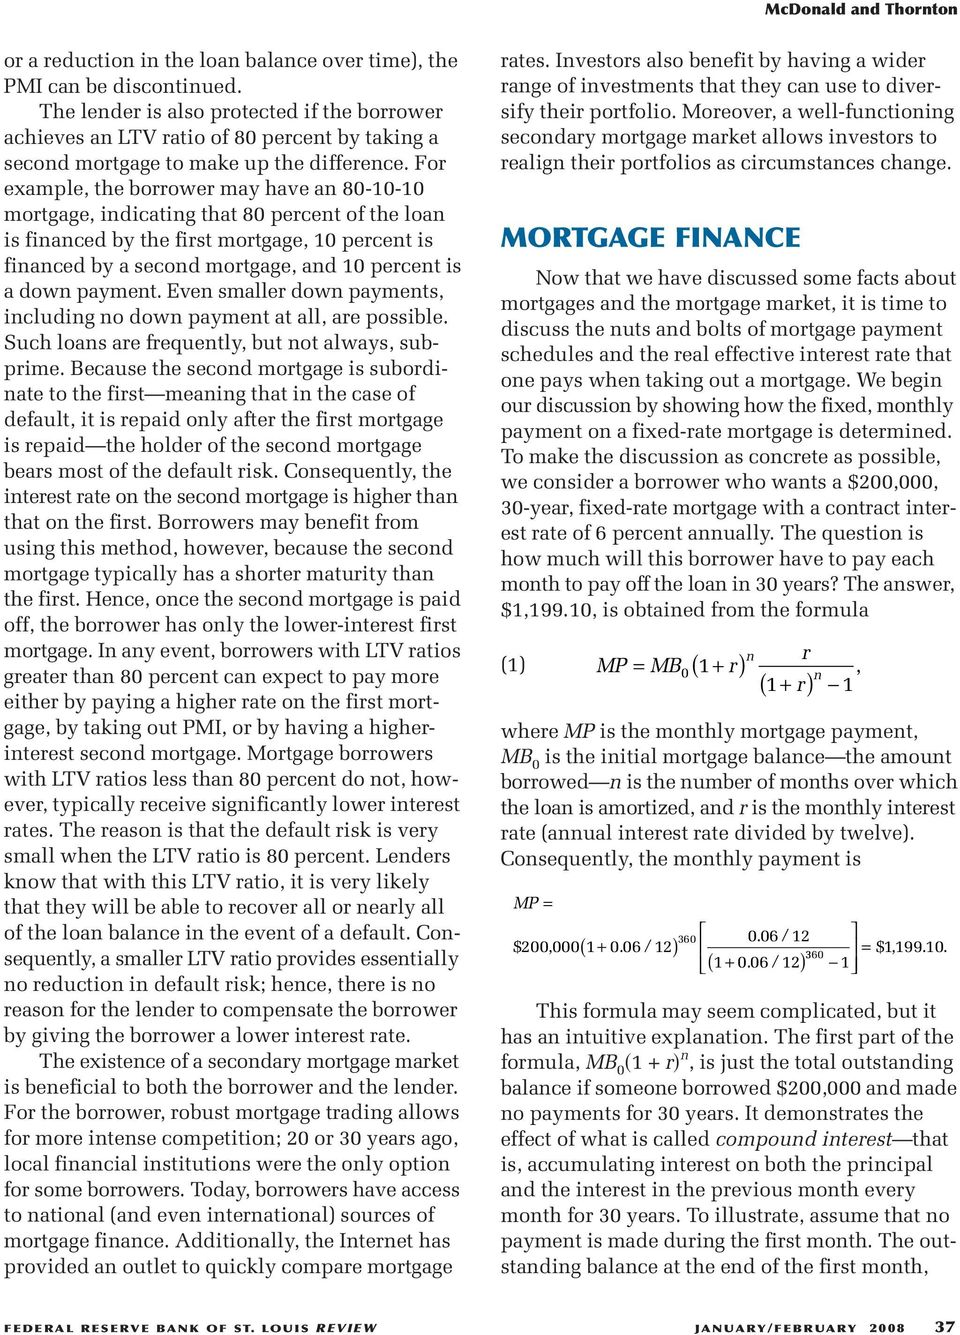 For exaple, the borrower ay have an 80-10-10 ortgage, indicating that 80 percent of the loan is financed by the first ortgage, 10 percent is financed by a second ortgage, and 10 percent is a down